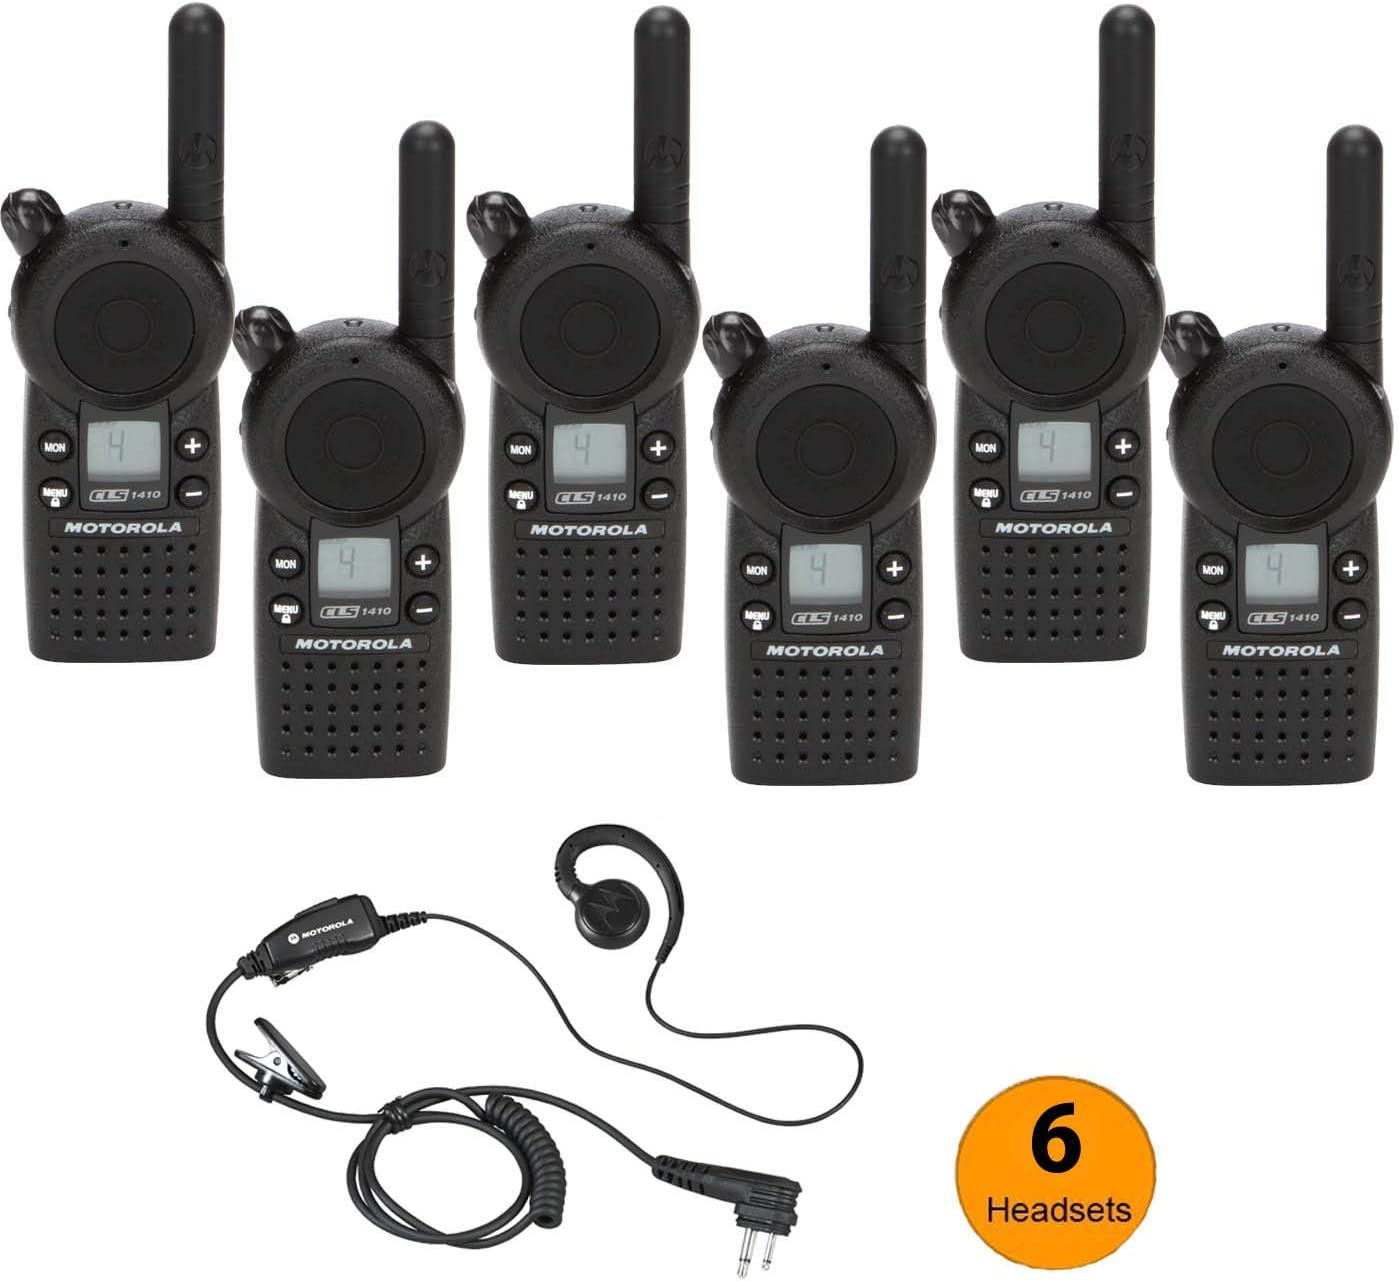 6 Pack of Motorola CLS1410 Walkie Talkie Radios with Headsets, Black